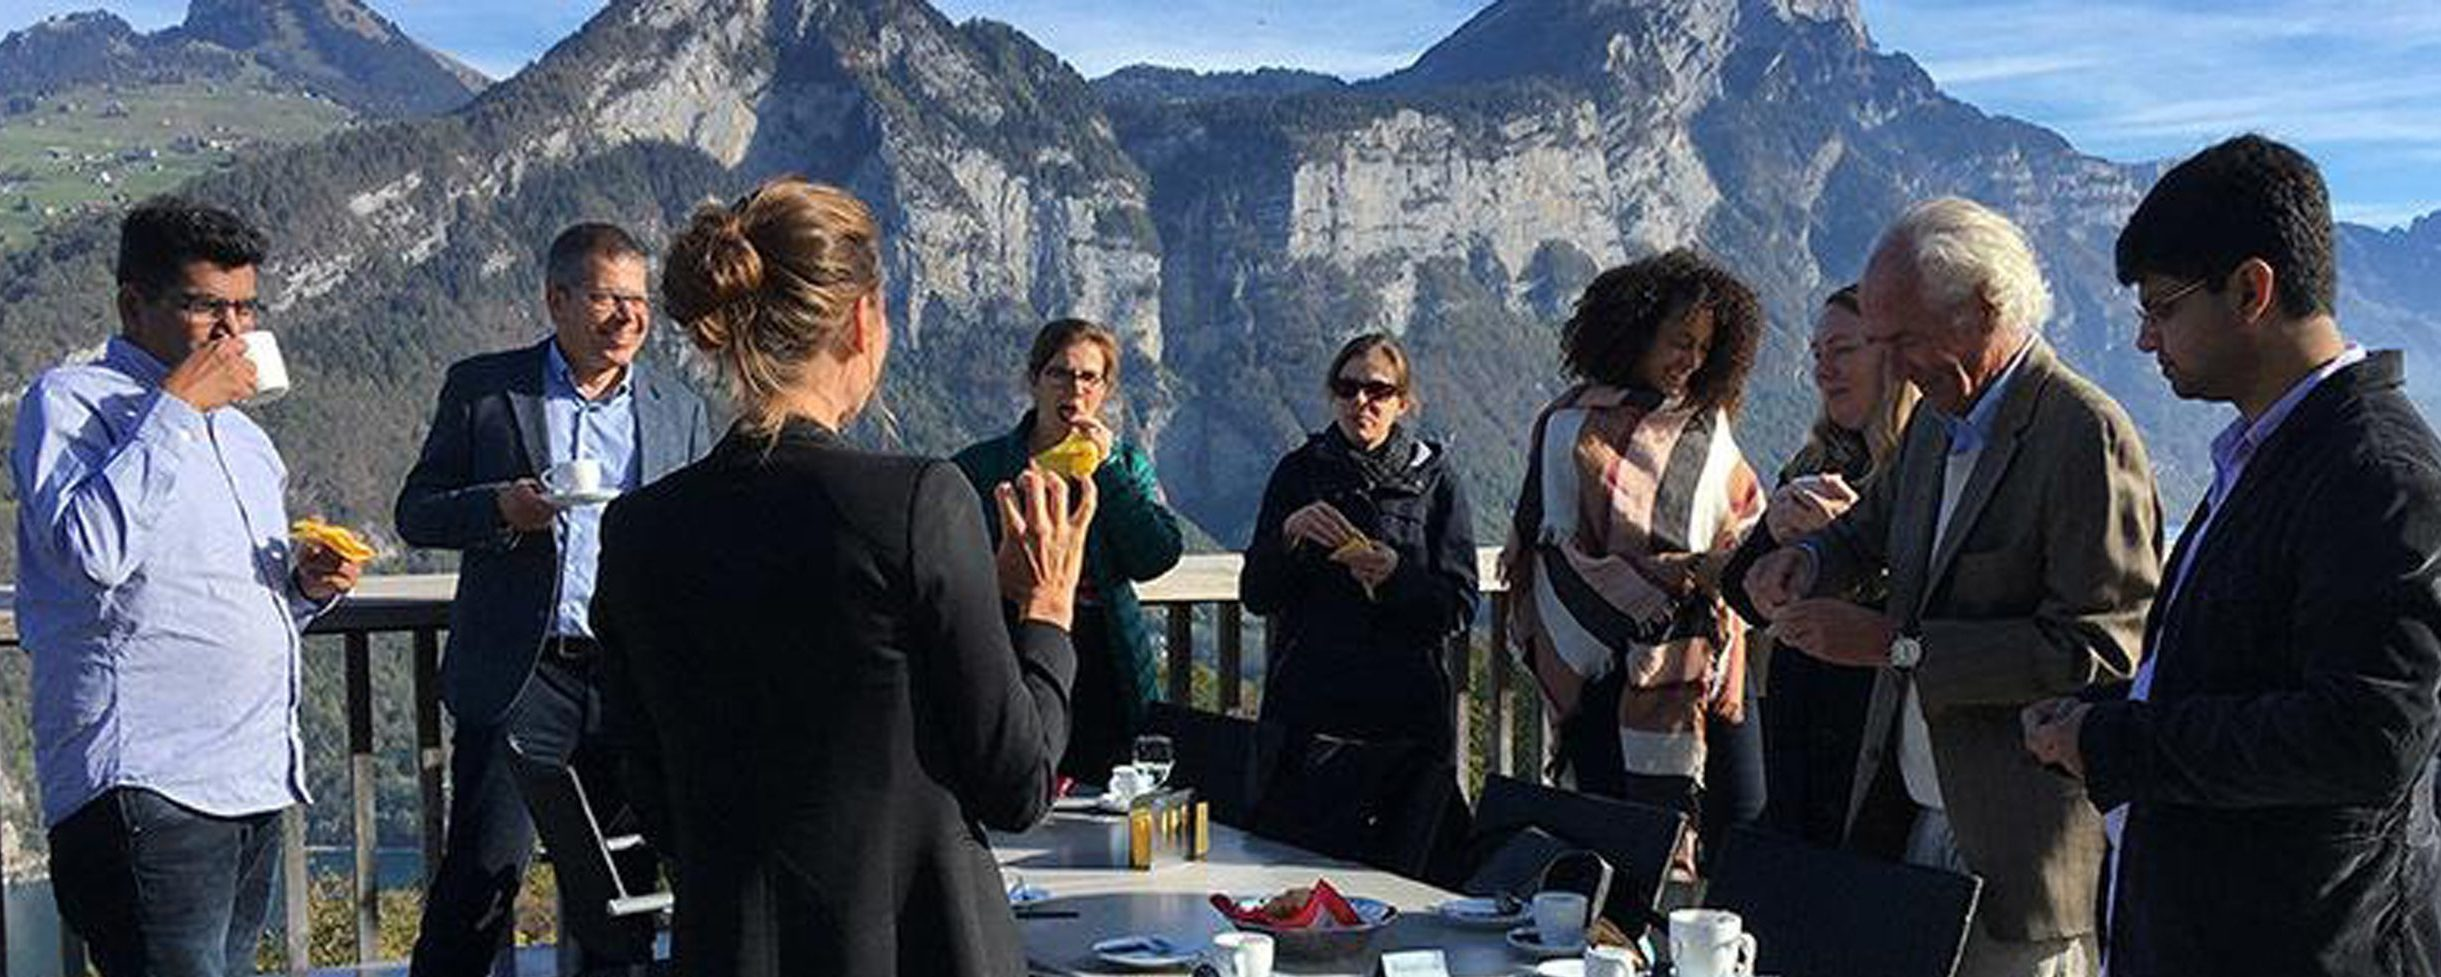 Excursion with executives of ecos, Swiss Textiles and visitors, Vierwaldstätter, Switzerland, 2018